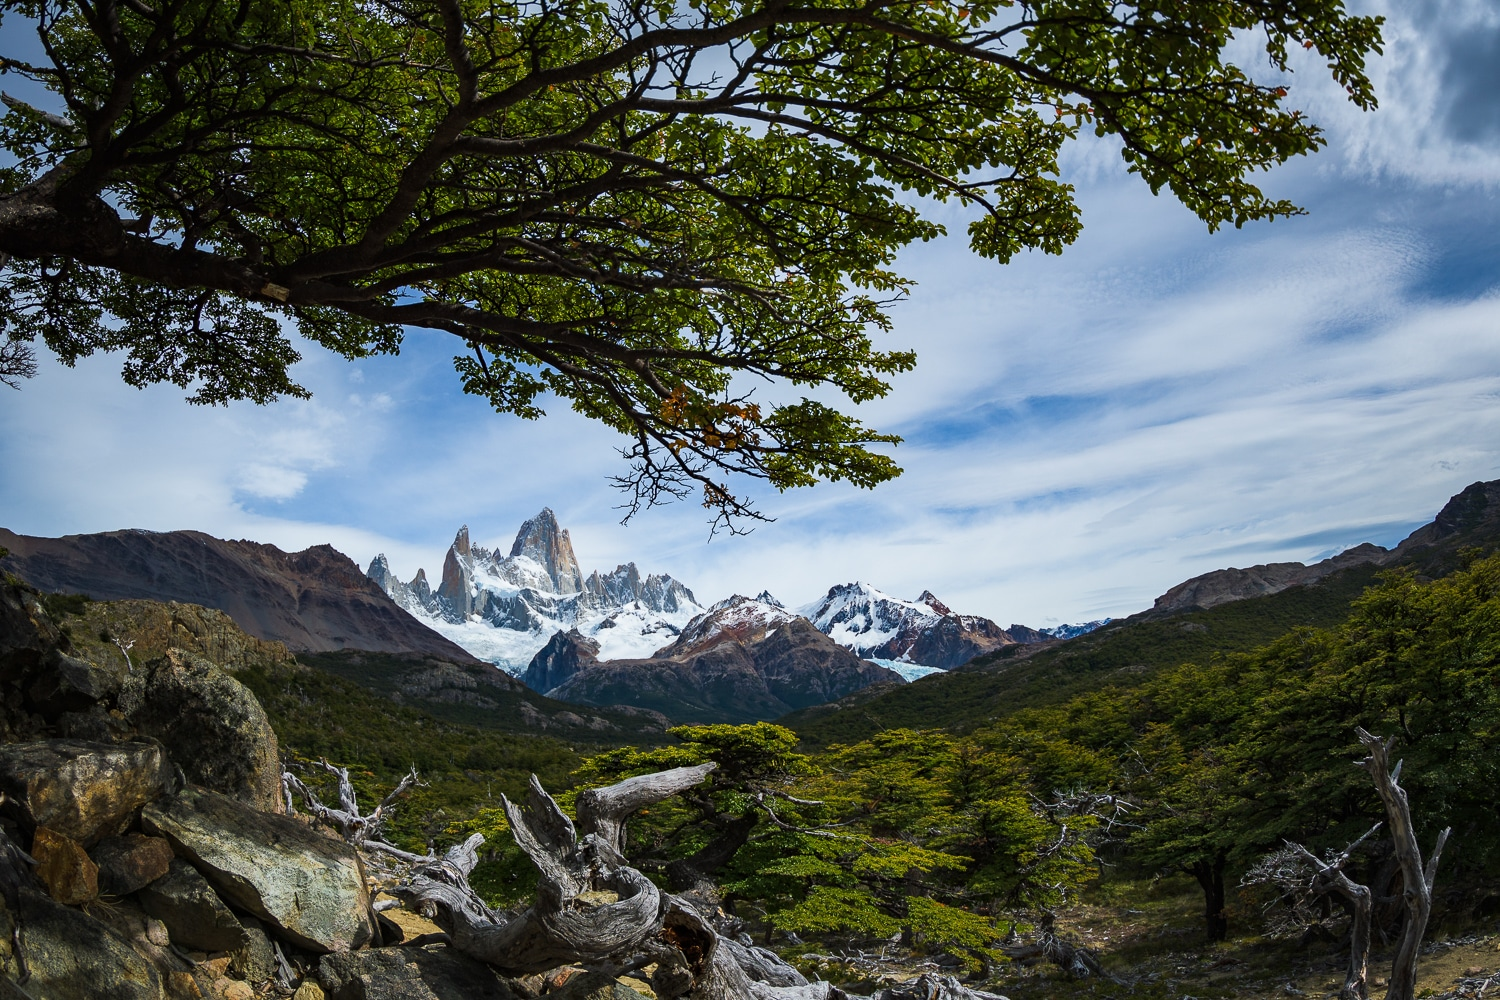 Mt Fitz Roy, Argentina. Nikon D500 . ISO100, f/4.5, 13mm, 1/3200 sec, Nikon Nikkor 8-15mm Fisheye Sample Photos